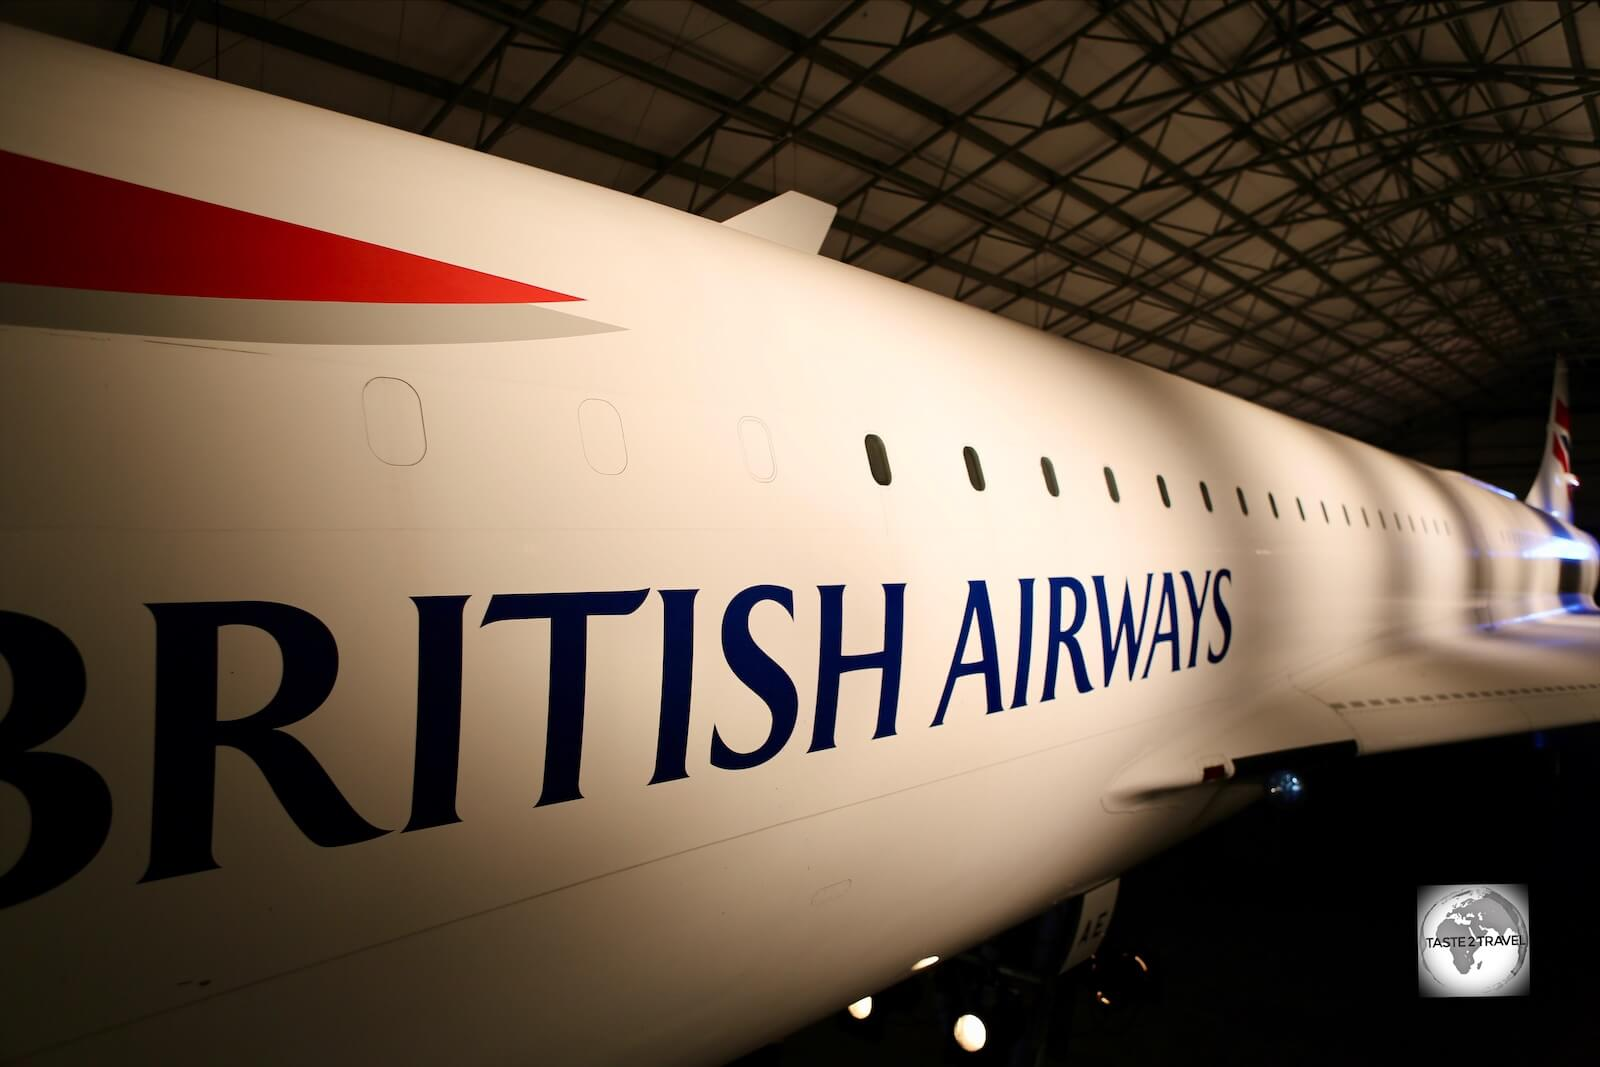 The British Airways Concorde which is open to visitors at the Barbados Concorde Experience.